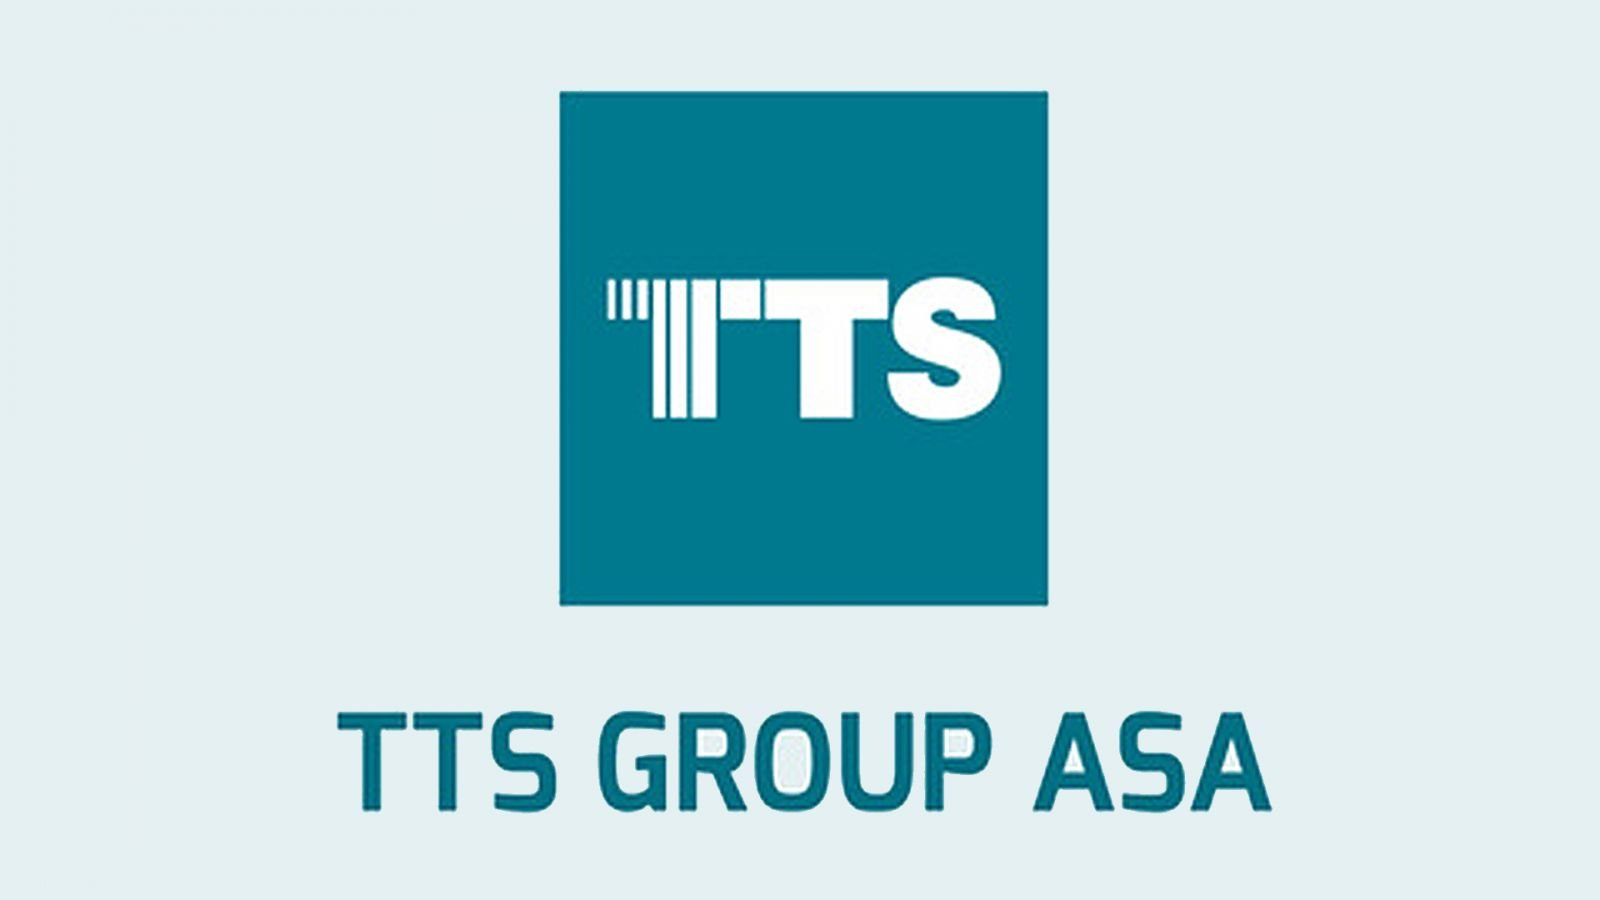 tts group asa logo